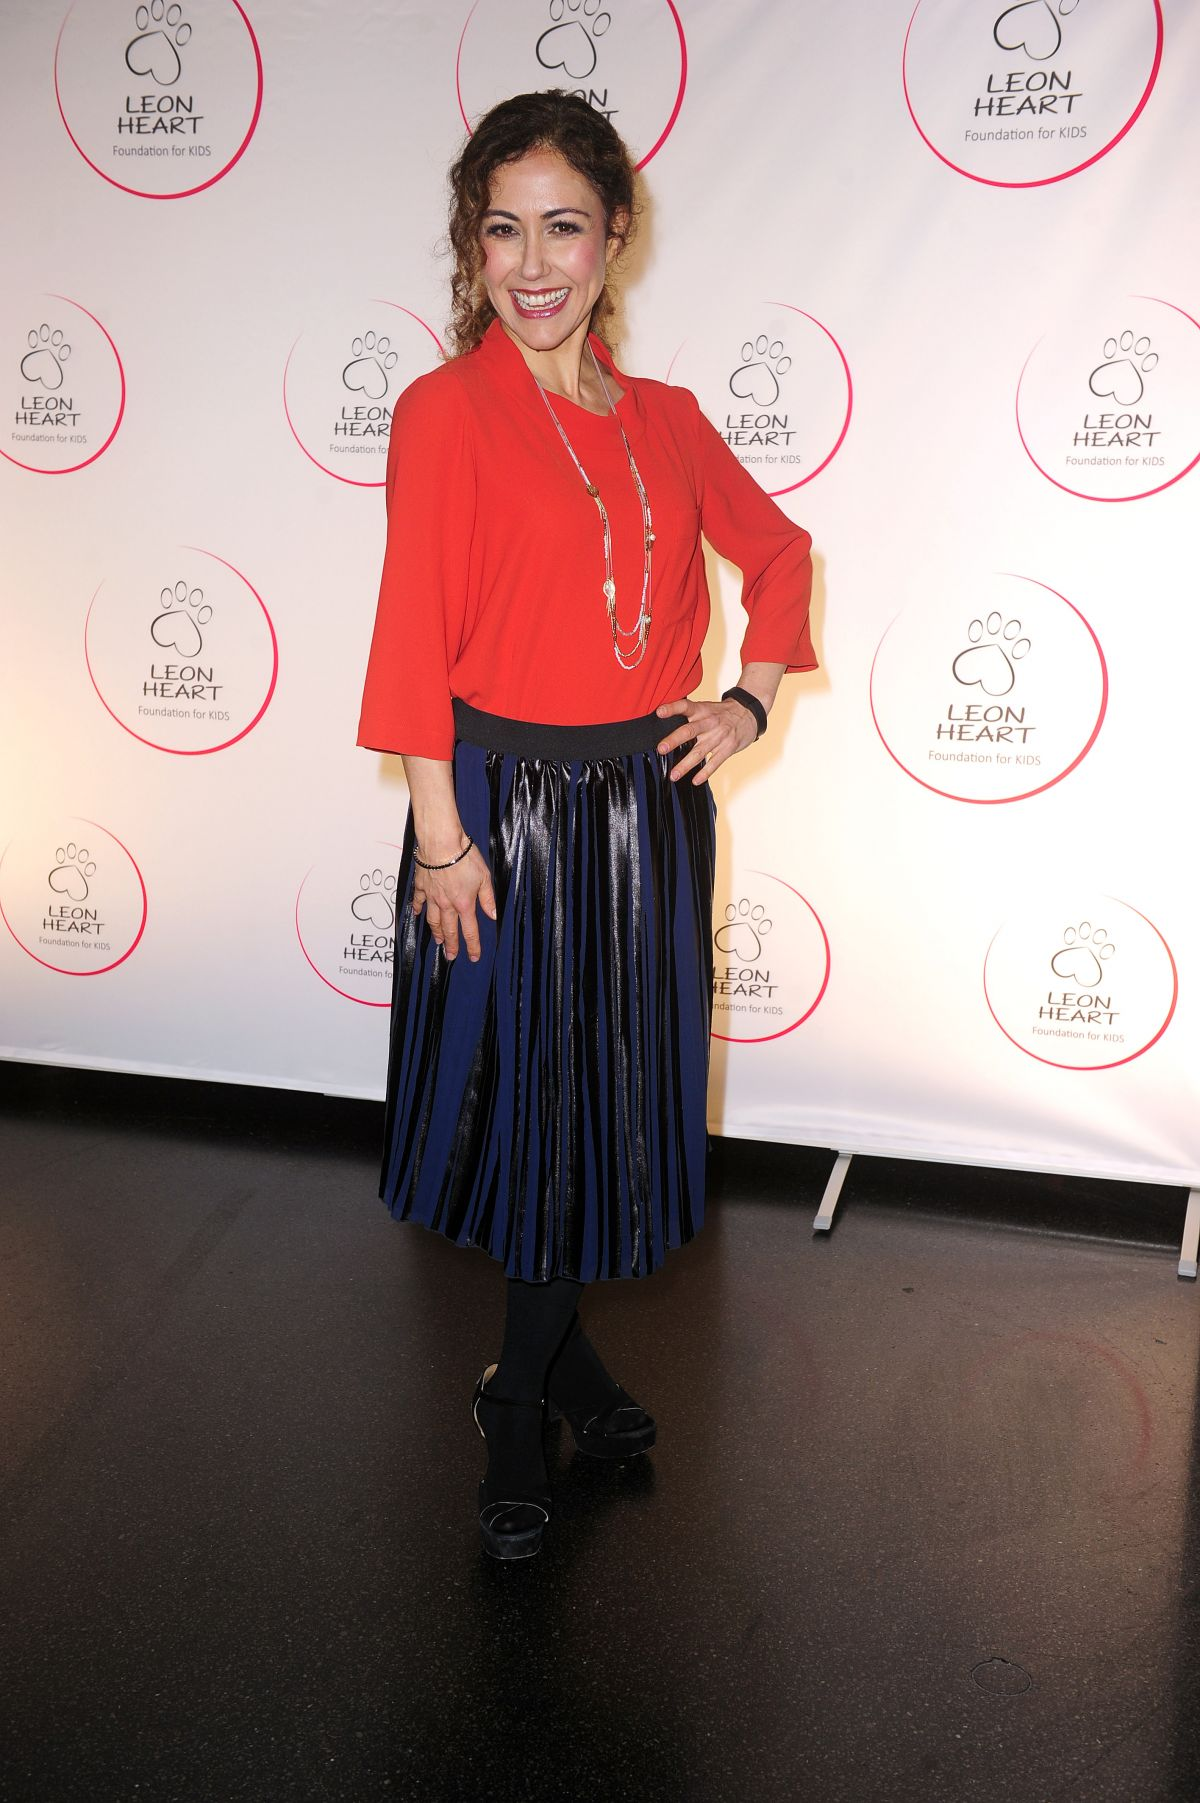 ANASTASIA ZAMPOUNIDIS at Leon Heart Foundation Charity Dinner in Berlin 10/28/2016